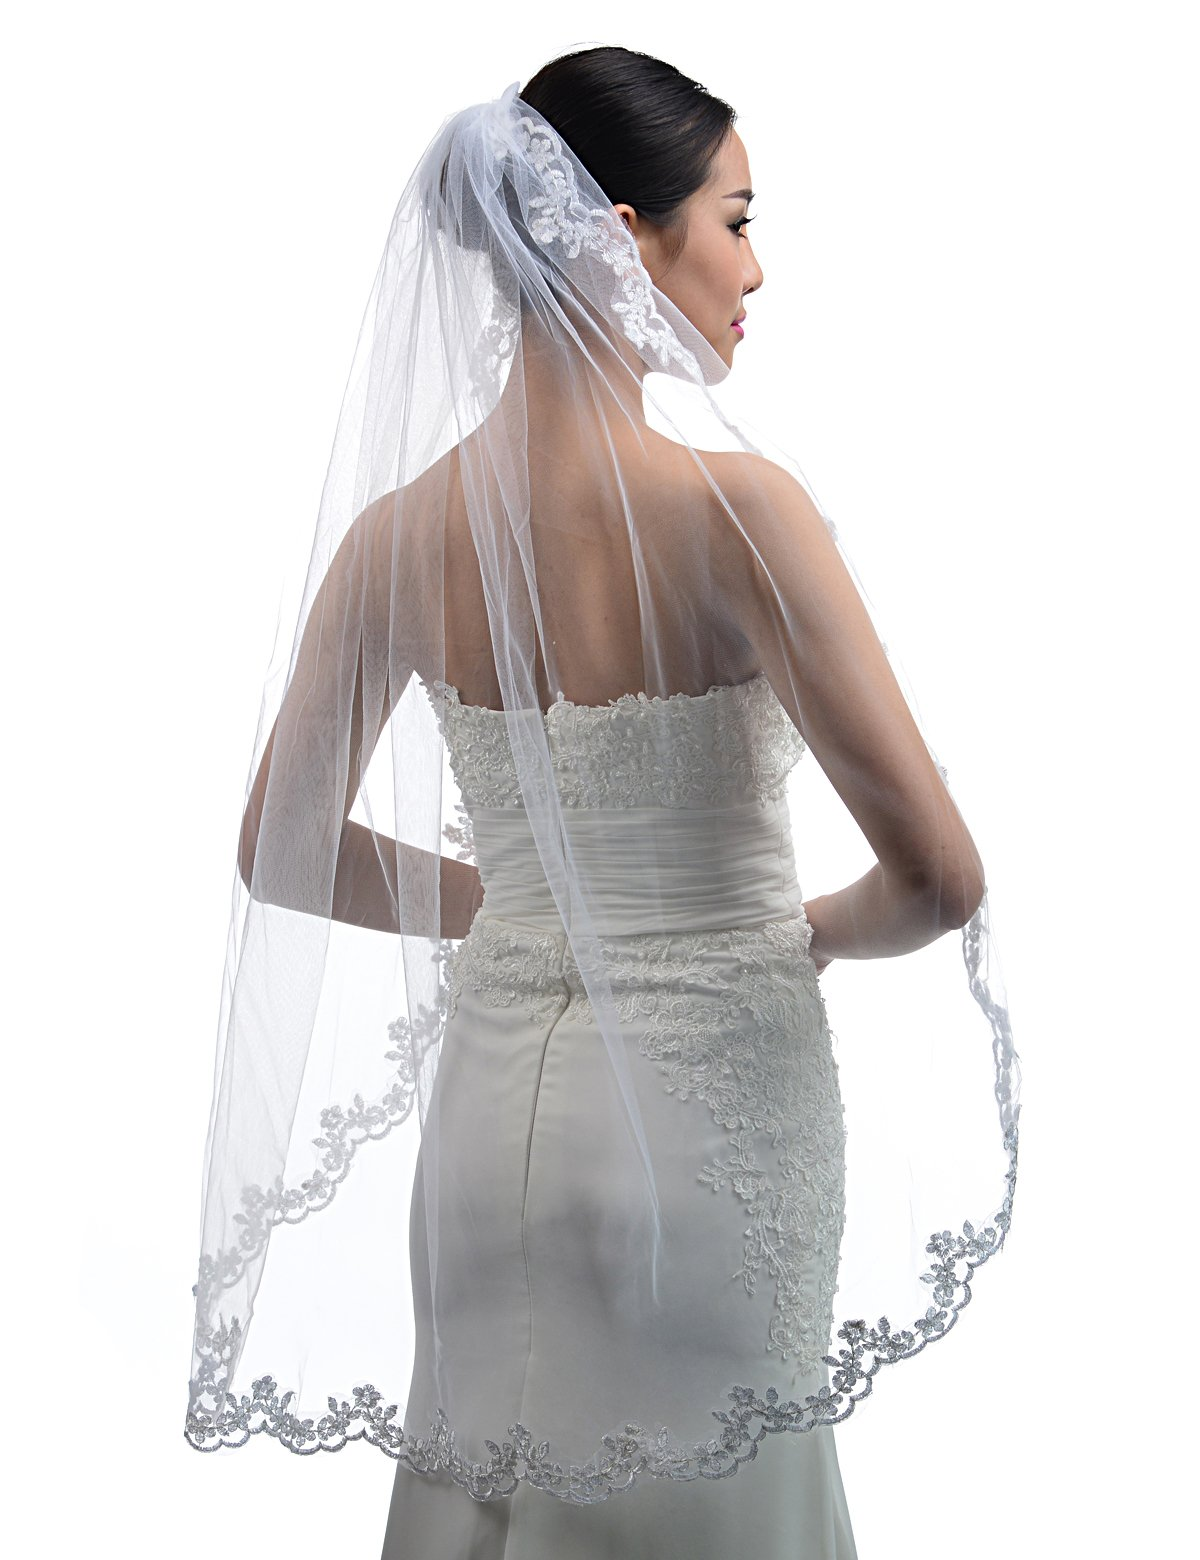 Topwedding Fingertip Length 1 Tier White Bridal Wedding Veil with Lace Hem and Comb